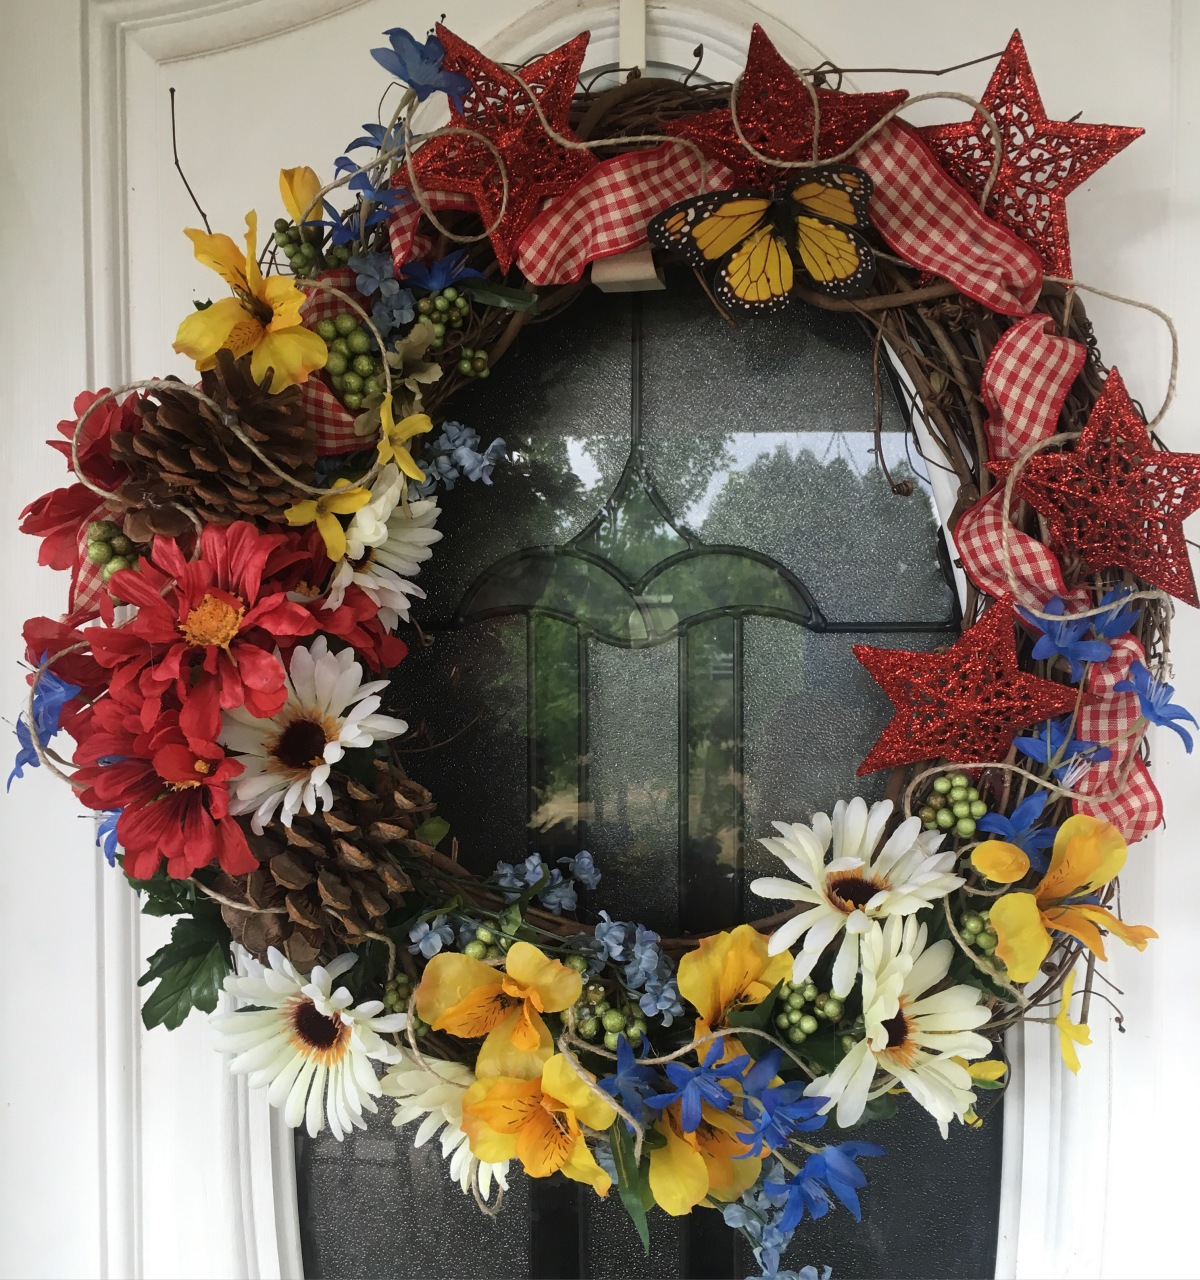 It's not Summer without a Pretty Wreath on theDoor!